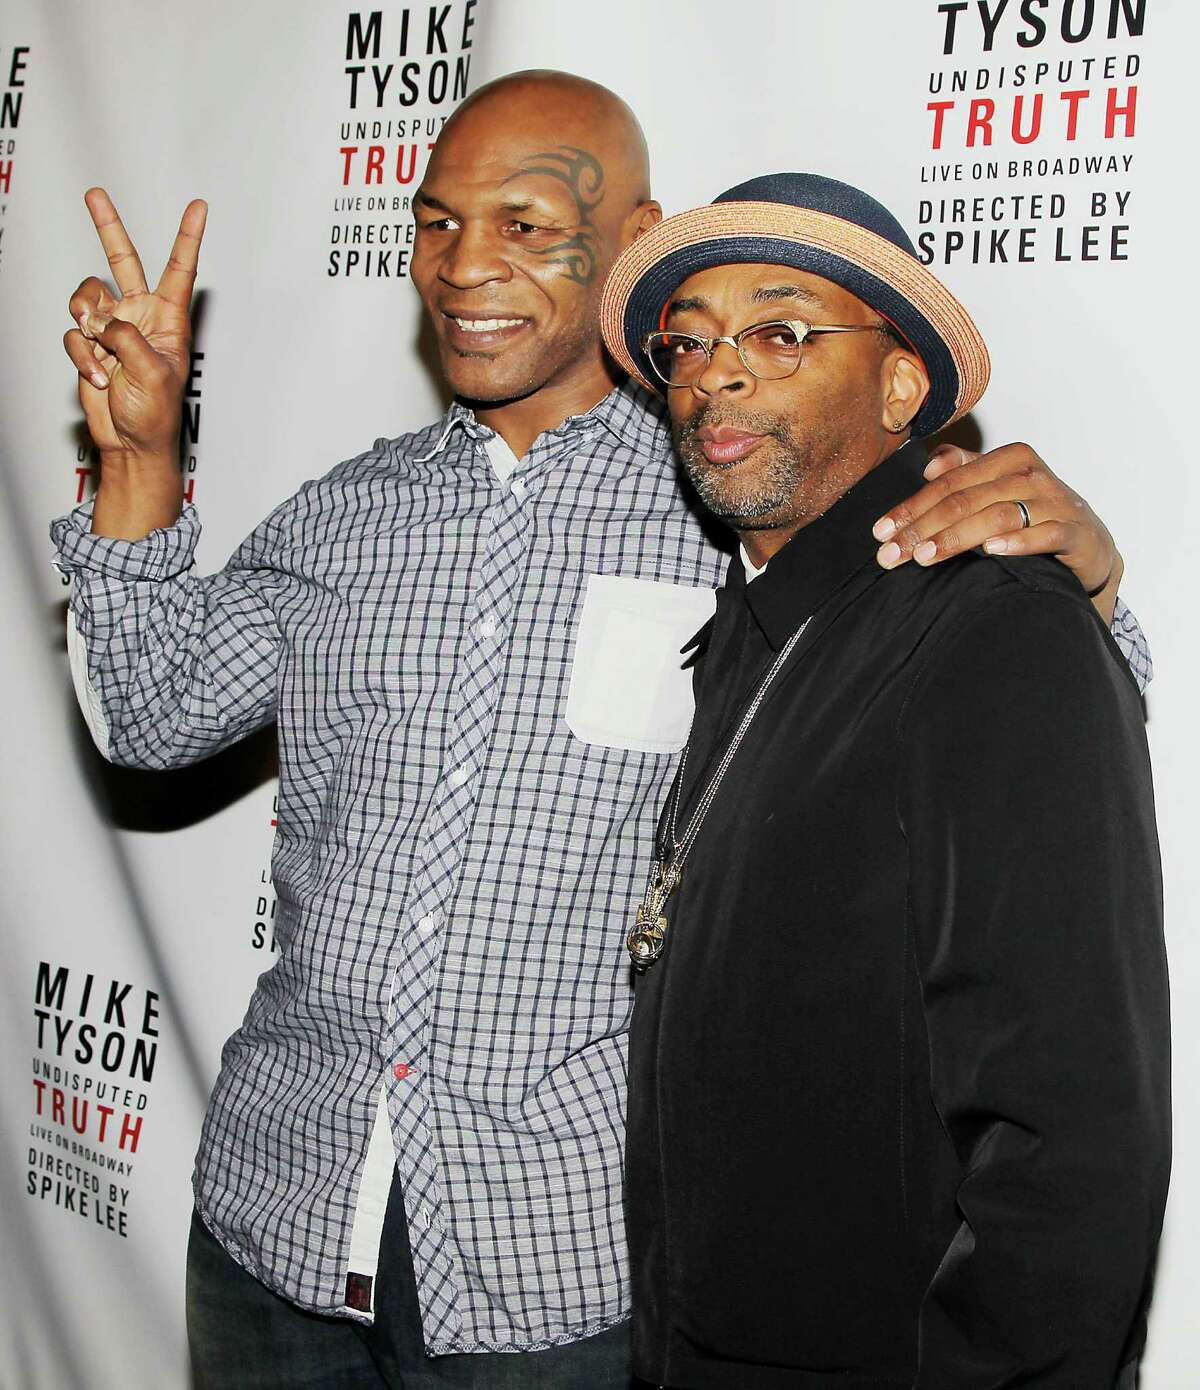 This image released by Starpix shows, former boxer Mike Tyson, left, and Spike Lee pose backstage after the curtain call on the opening night of